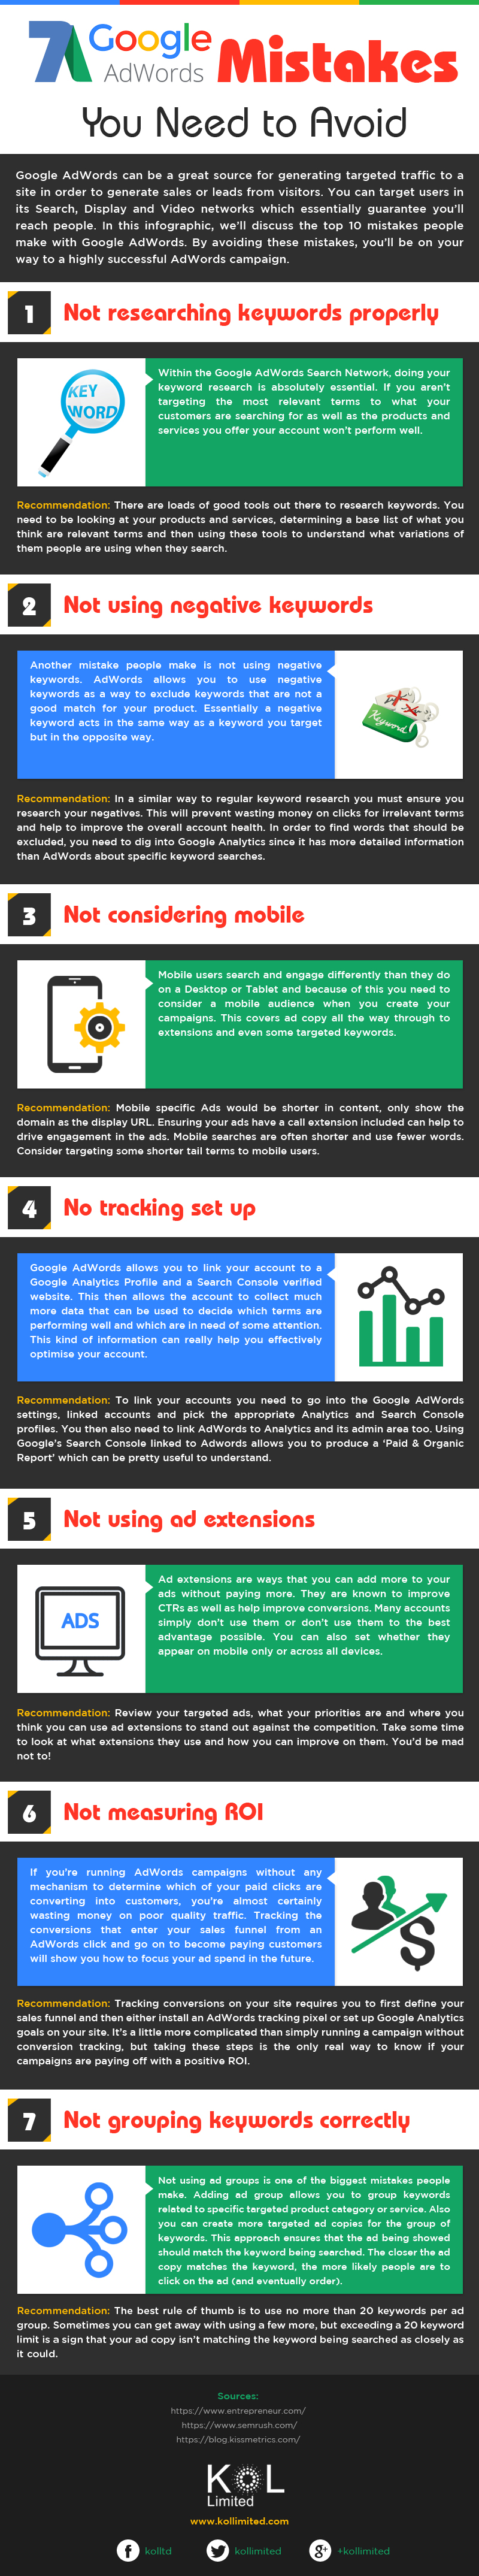 Google AdWords Mistakes You Need to Avoid